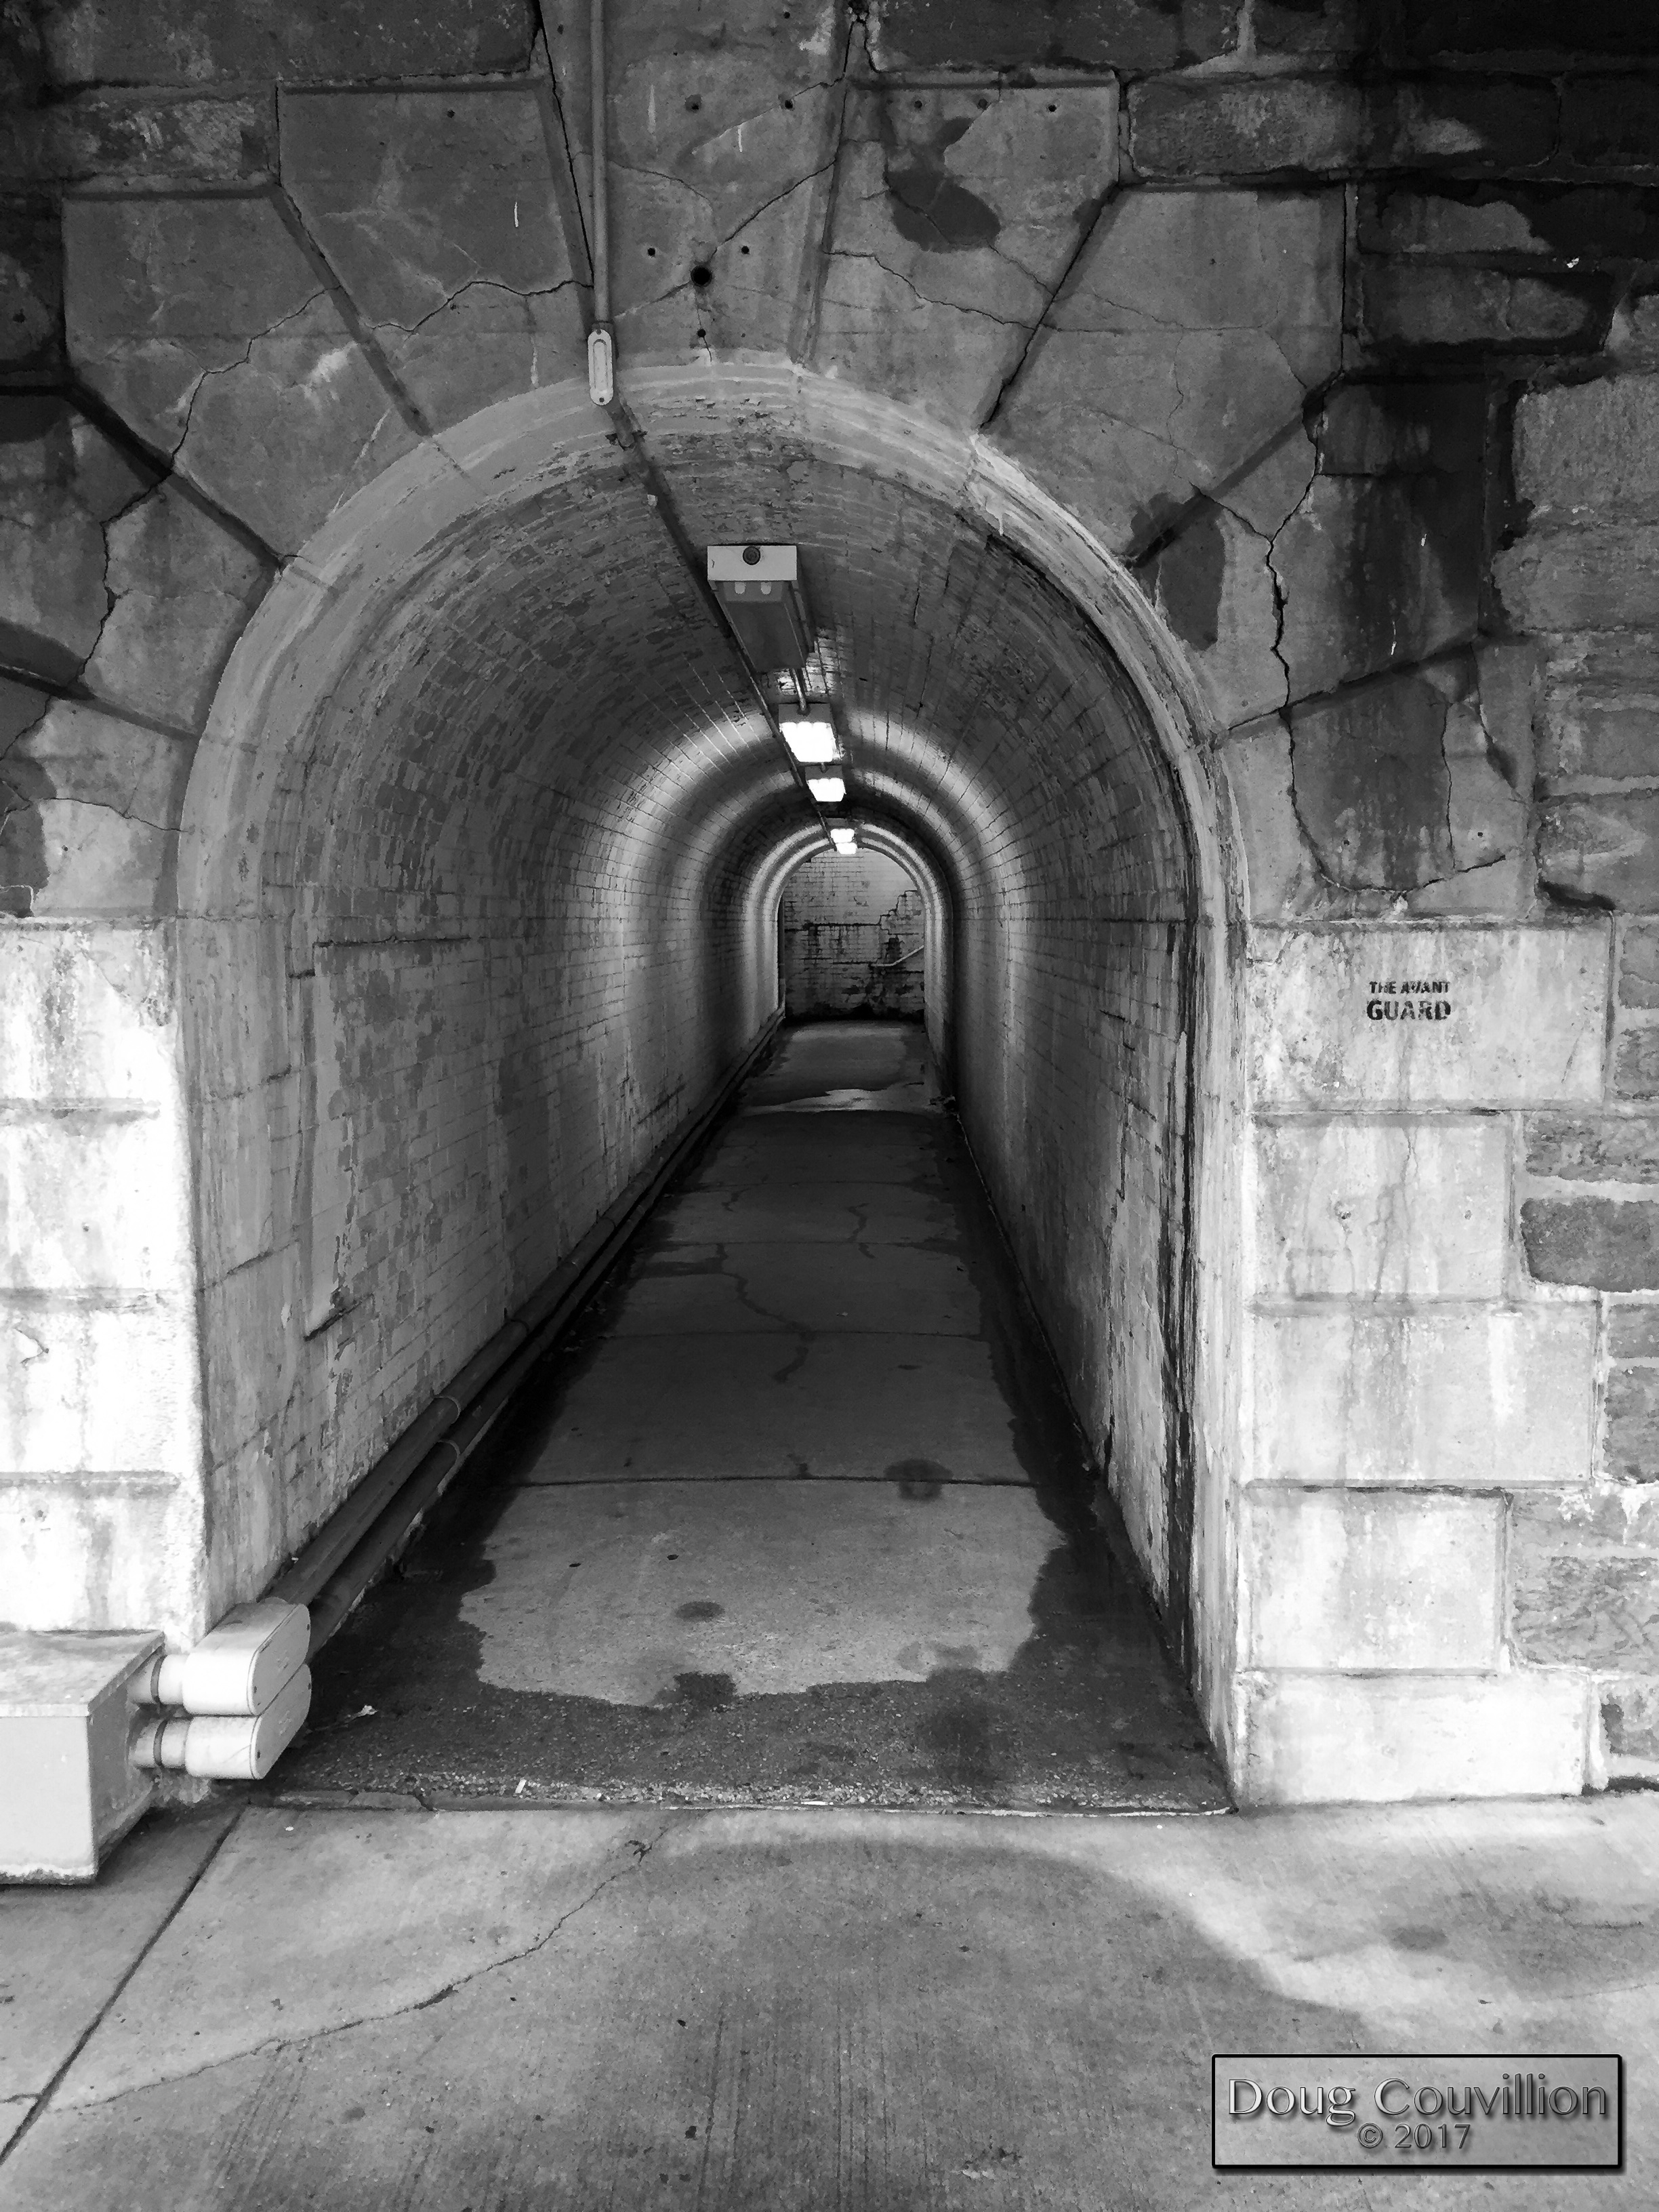 black and white photograph of a pedestrian tunnel by Doug Couvillion